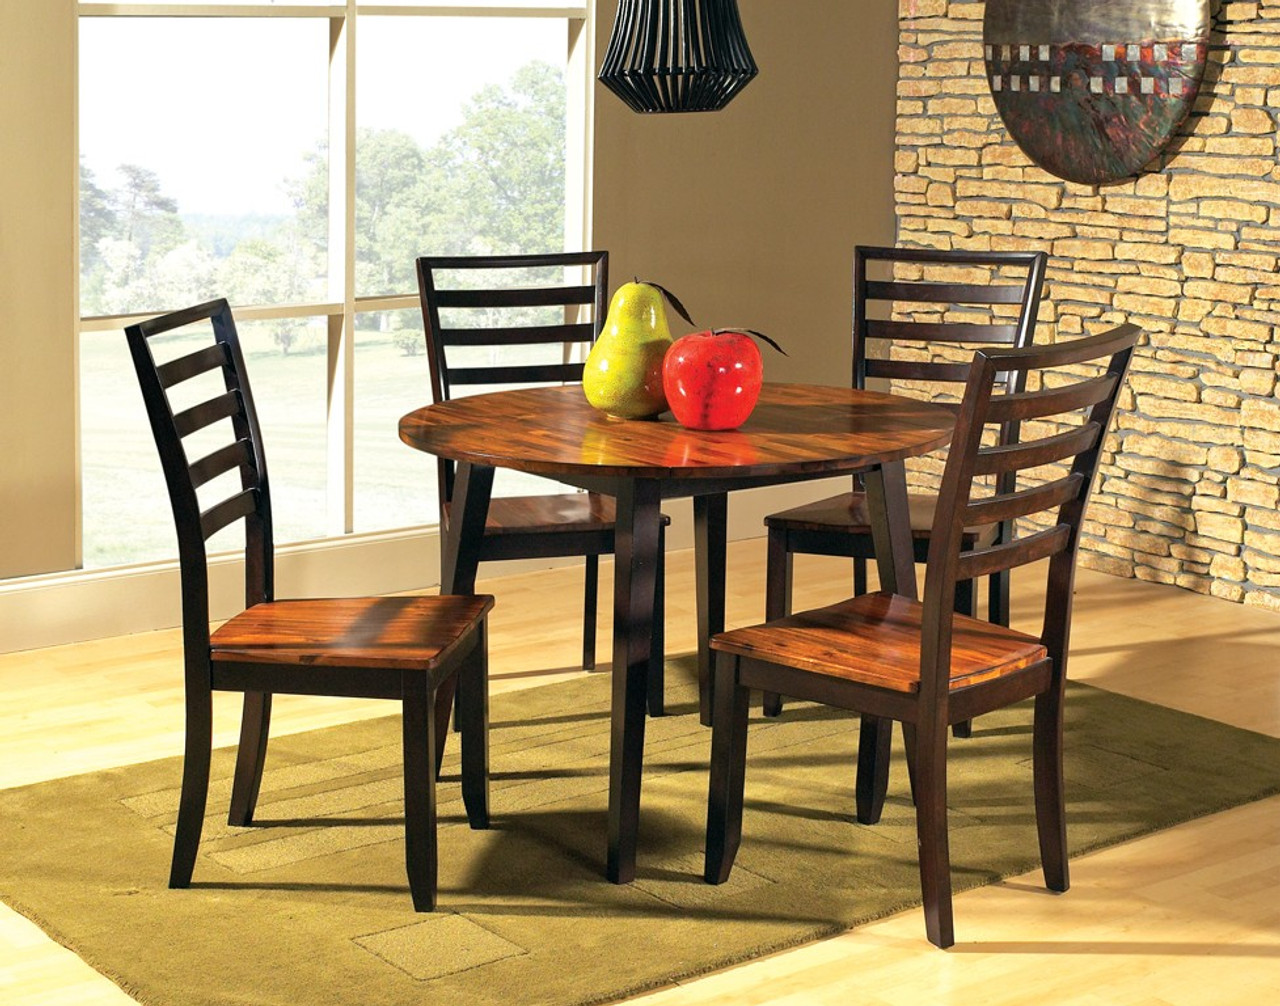 Buy Abaco 3 Piece Round Table Dining Set Includes Table 2 Chairs On Sale Near Houston Friendswood League City Starfine Furniture Mattress